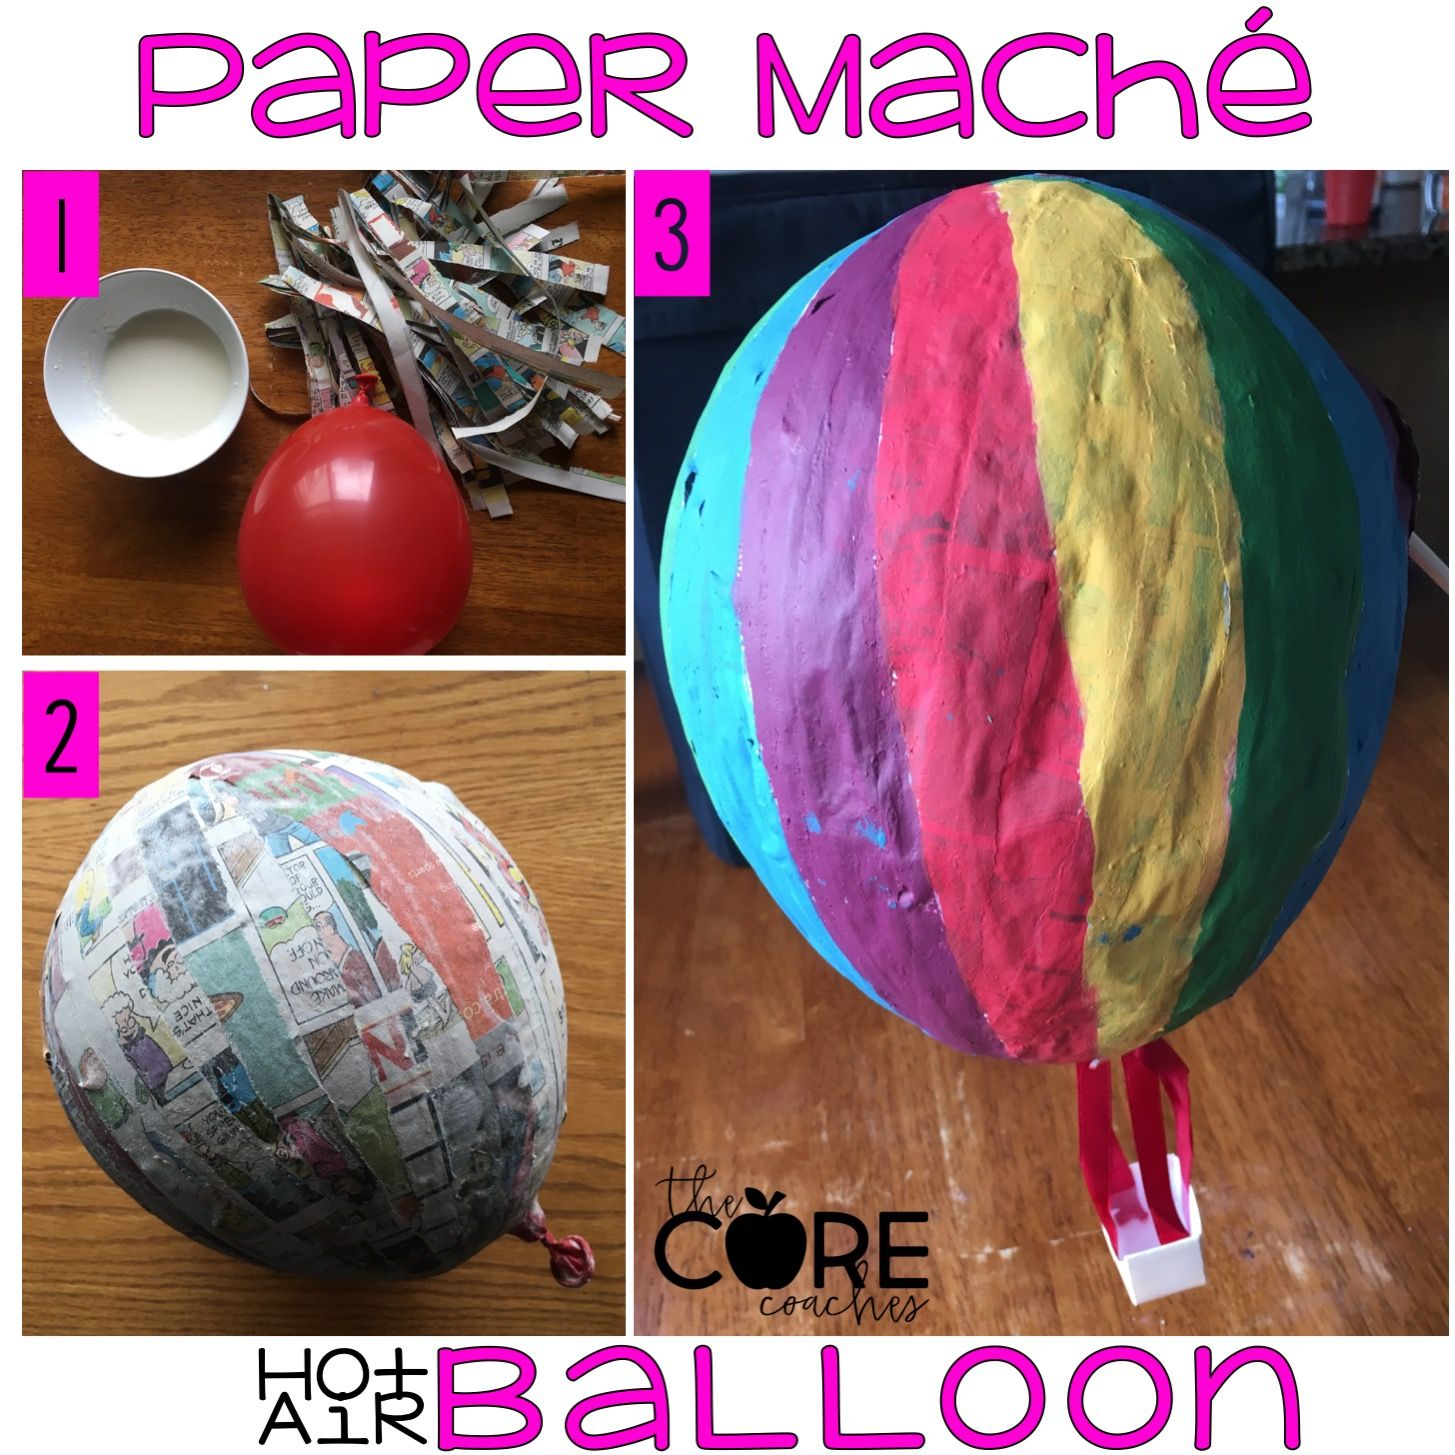 Paper Mache hot air balloon instructions as part of aeronautics day in the 10 day end of year countdown activities.